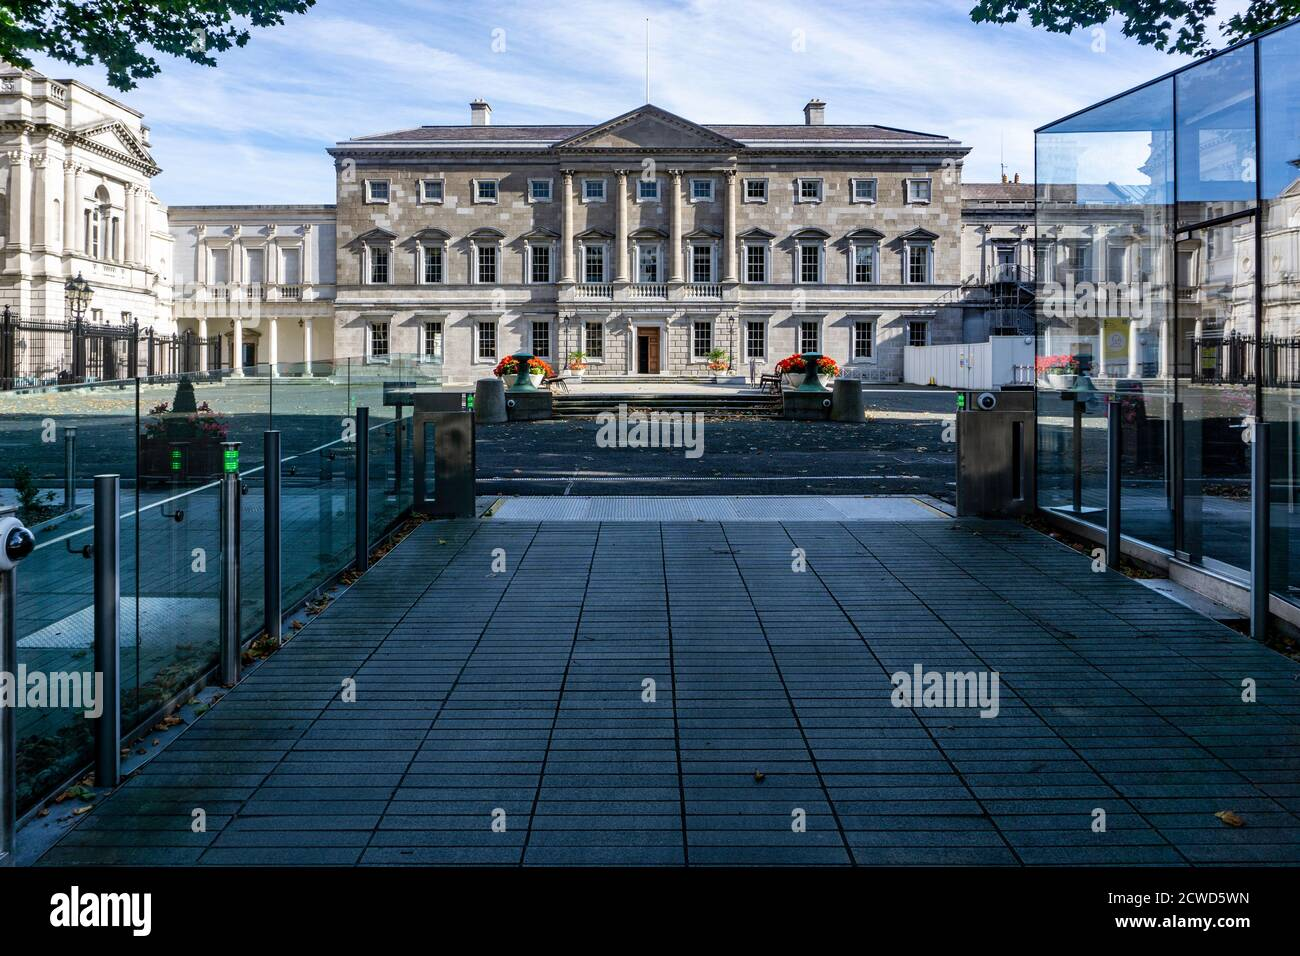 Leinster House, Kildare Street, Dublin,  the  seat of the Oireachtas, the parliament of Ireland., Stock Photo